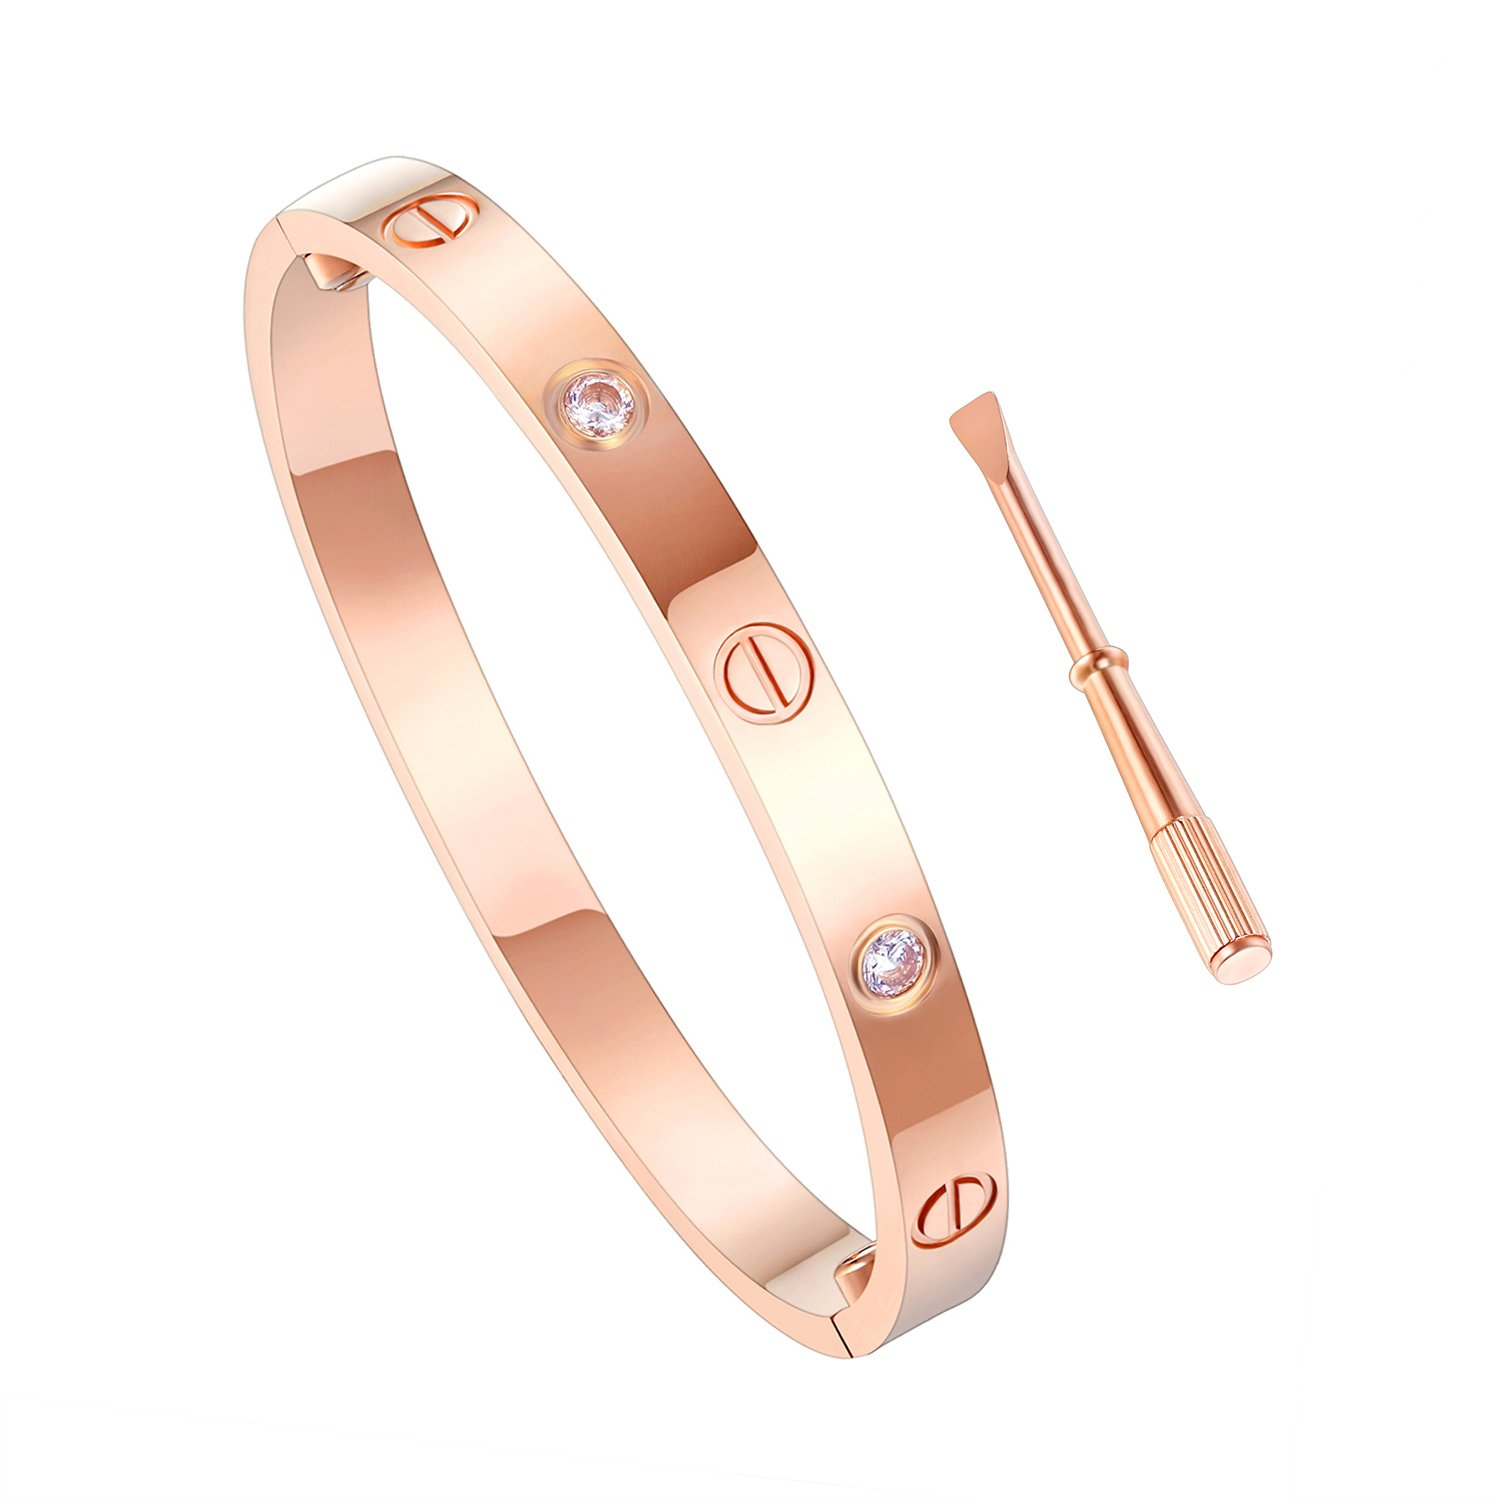 Z.RACLE Love Bangle Bracelet Stainless Steel with Screw - Best Gift for Love - 6.3IN Rose Gold CZ